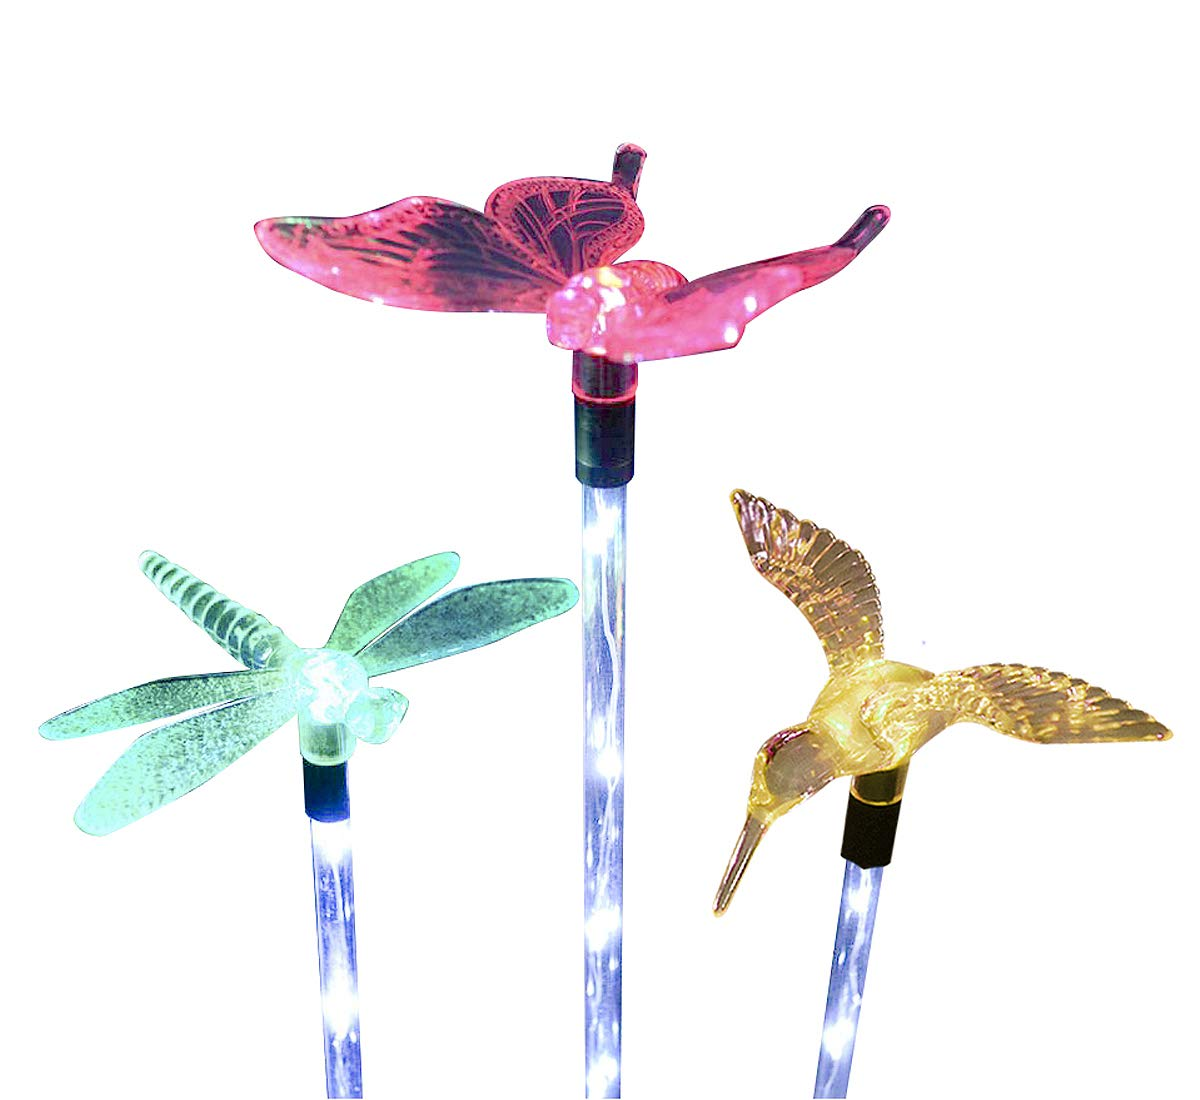 Garden Lights ,Solarmks Garden Solar Lights Outdoor Multi-color Changing LED Hummingbird, Dragonfly, Butterfly Lights ,with a White LED Light Stake for Garden Decorations